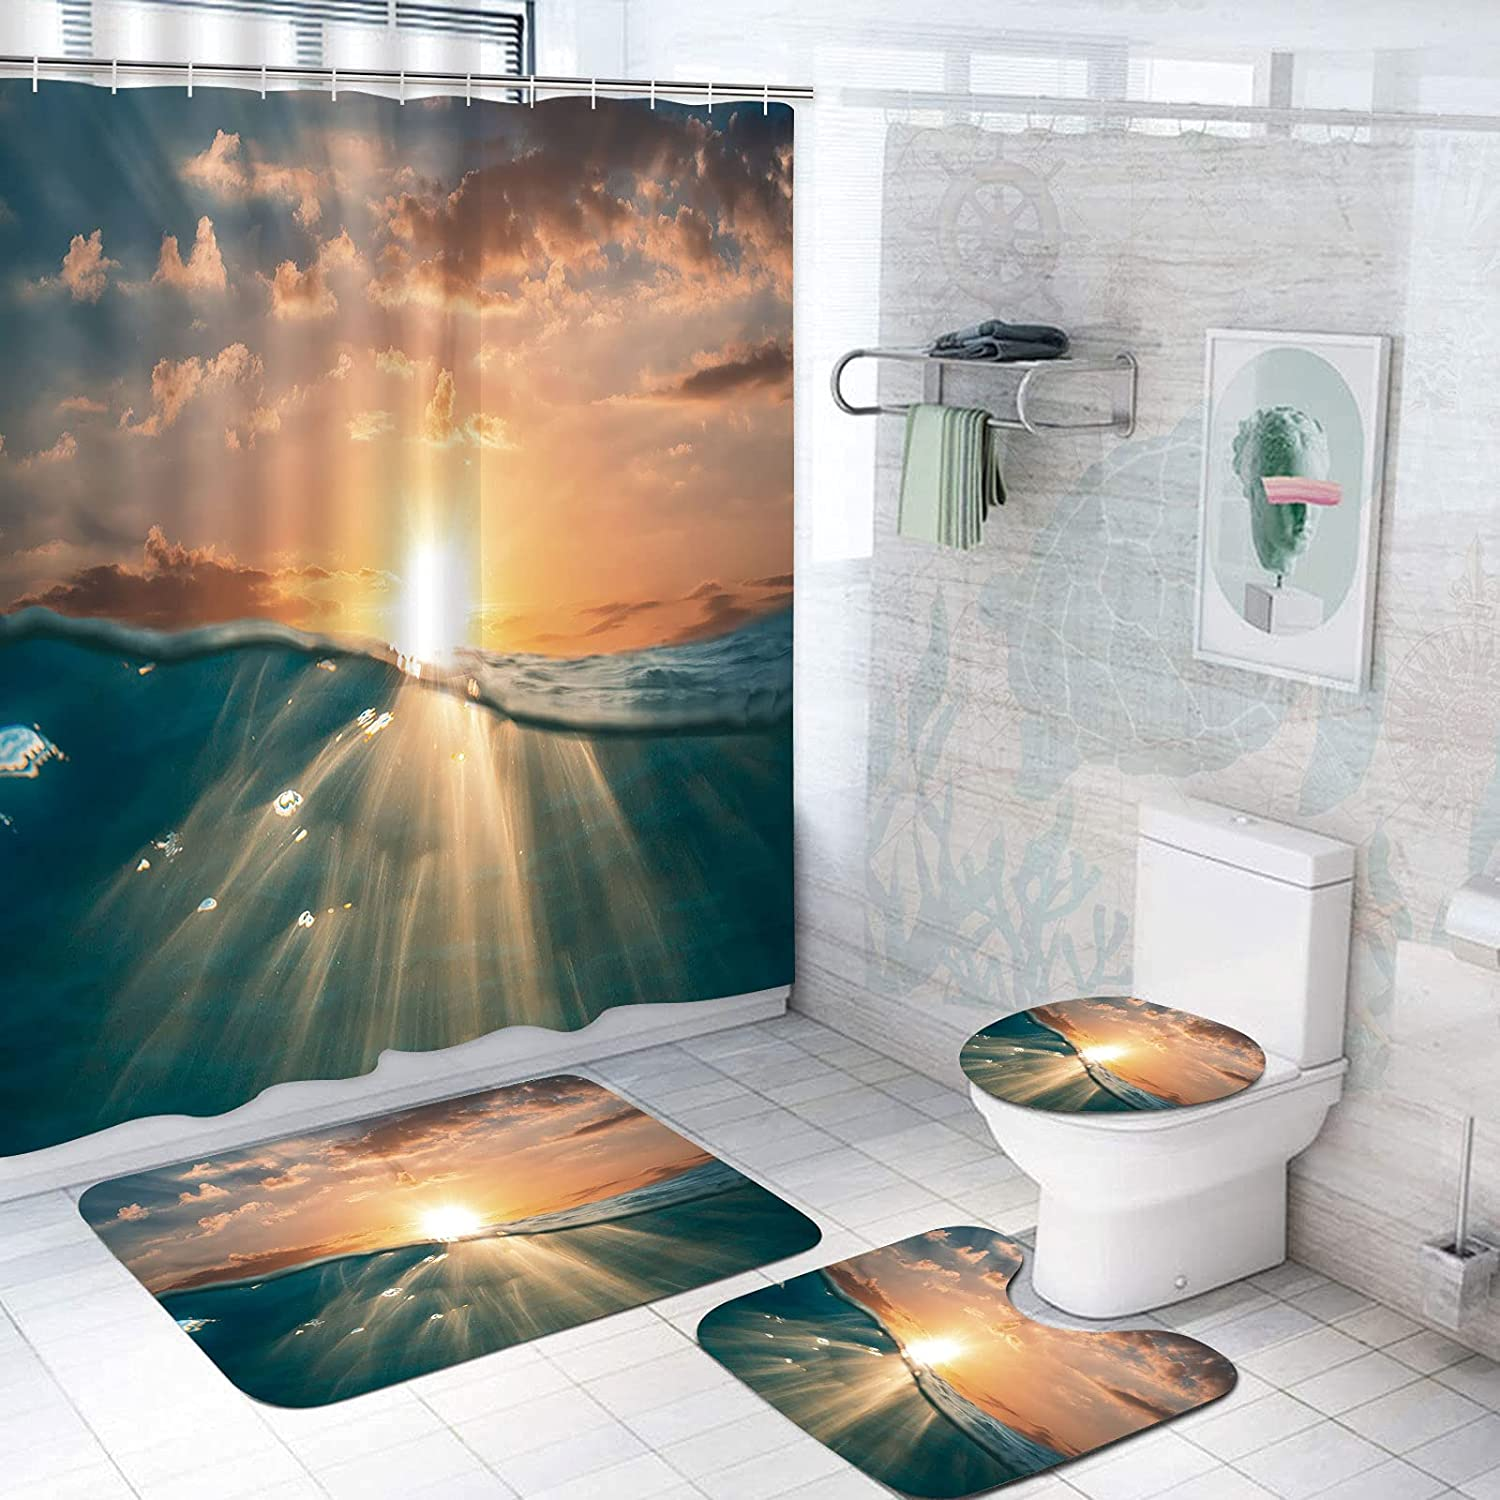 SUPNON 4 Pcs 72X72 unisex Inch 35% OFF Sets Shower Accessory Matching Bathroom